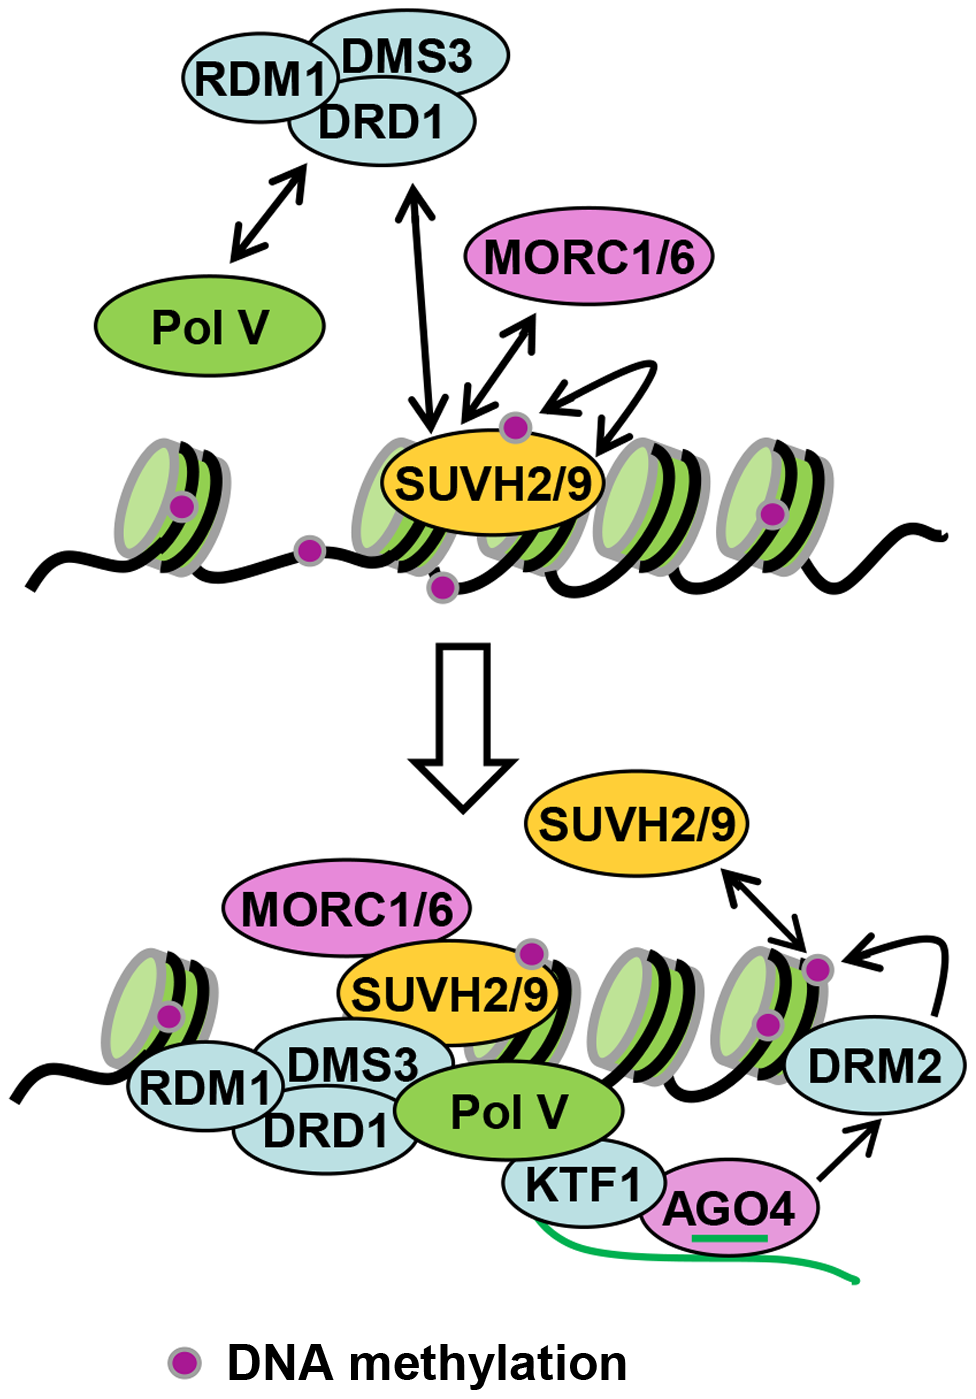 Model for the role of SUVH2, SUVH9 in RdDM.